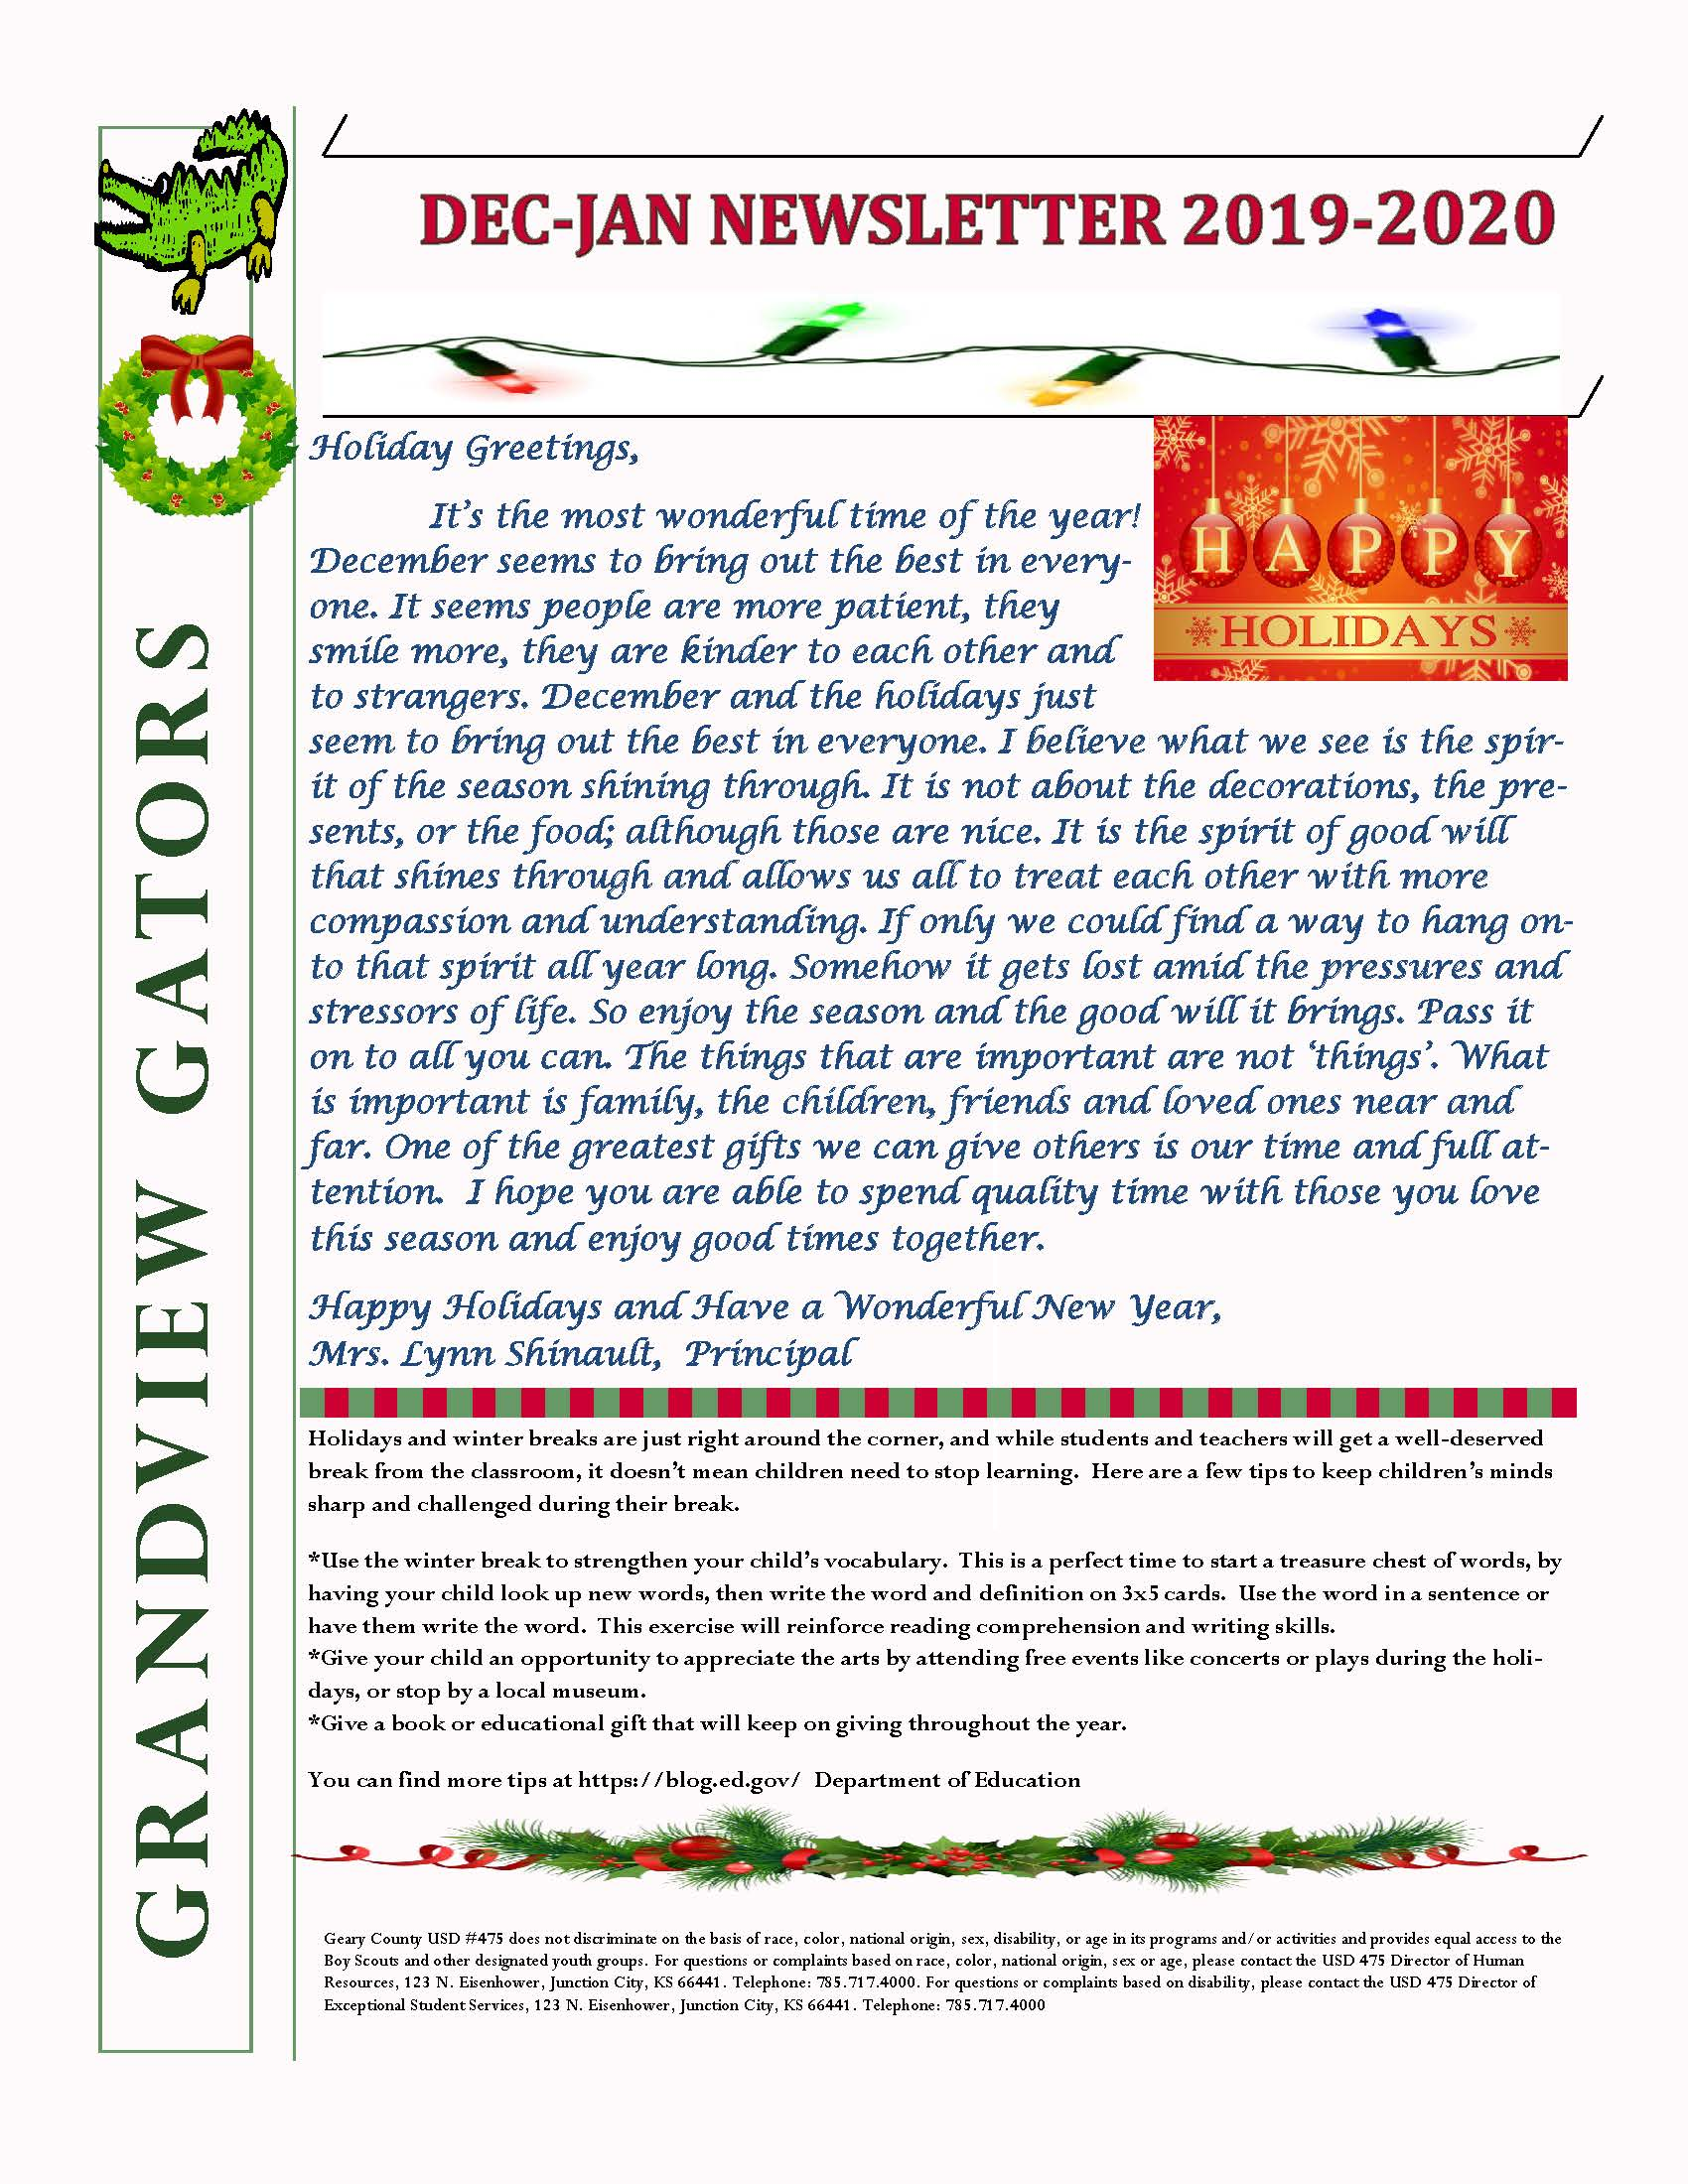 December/January newsletter...see attached text